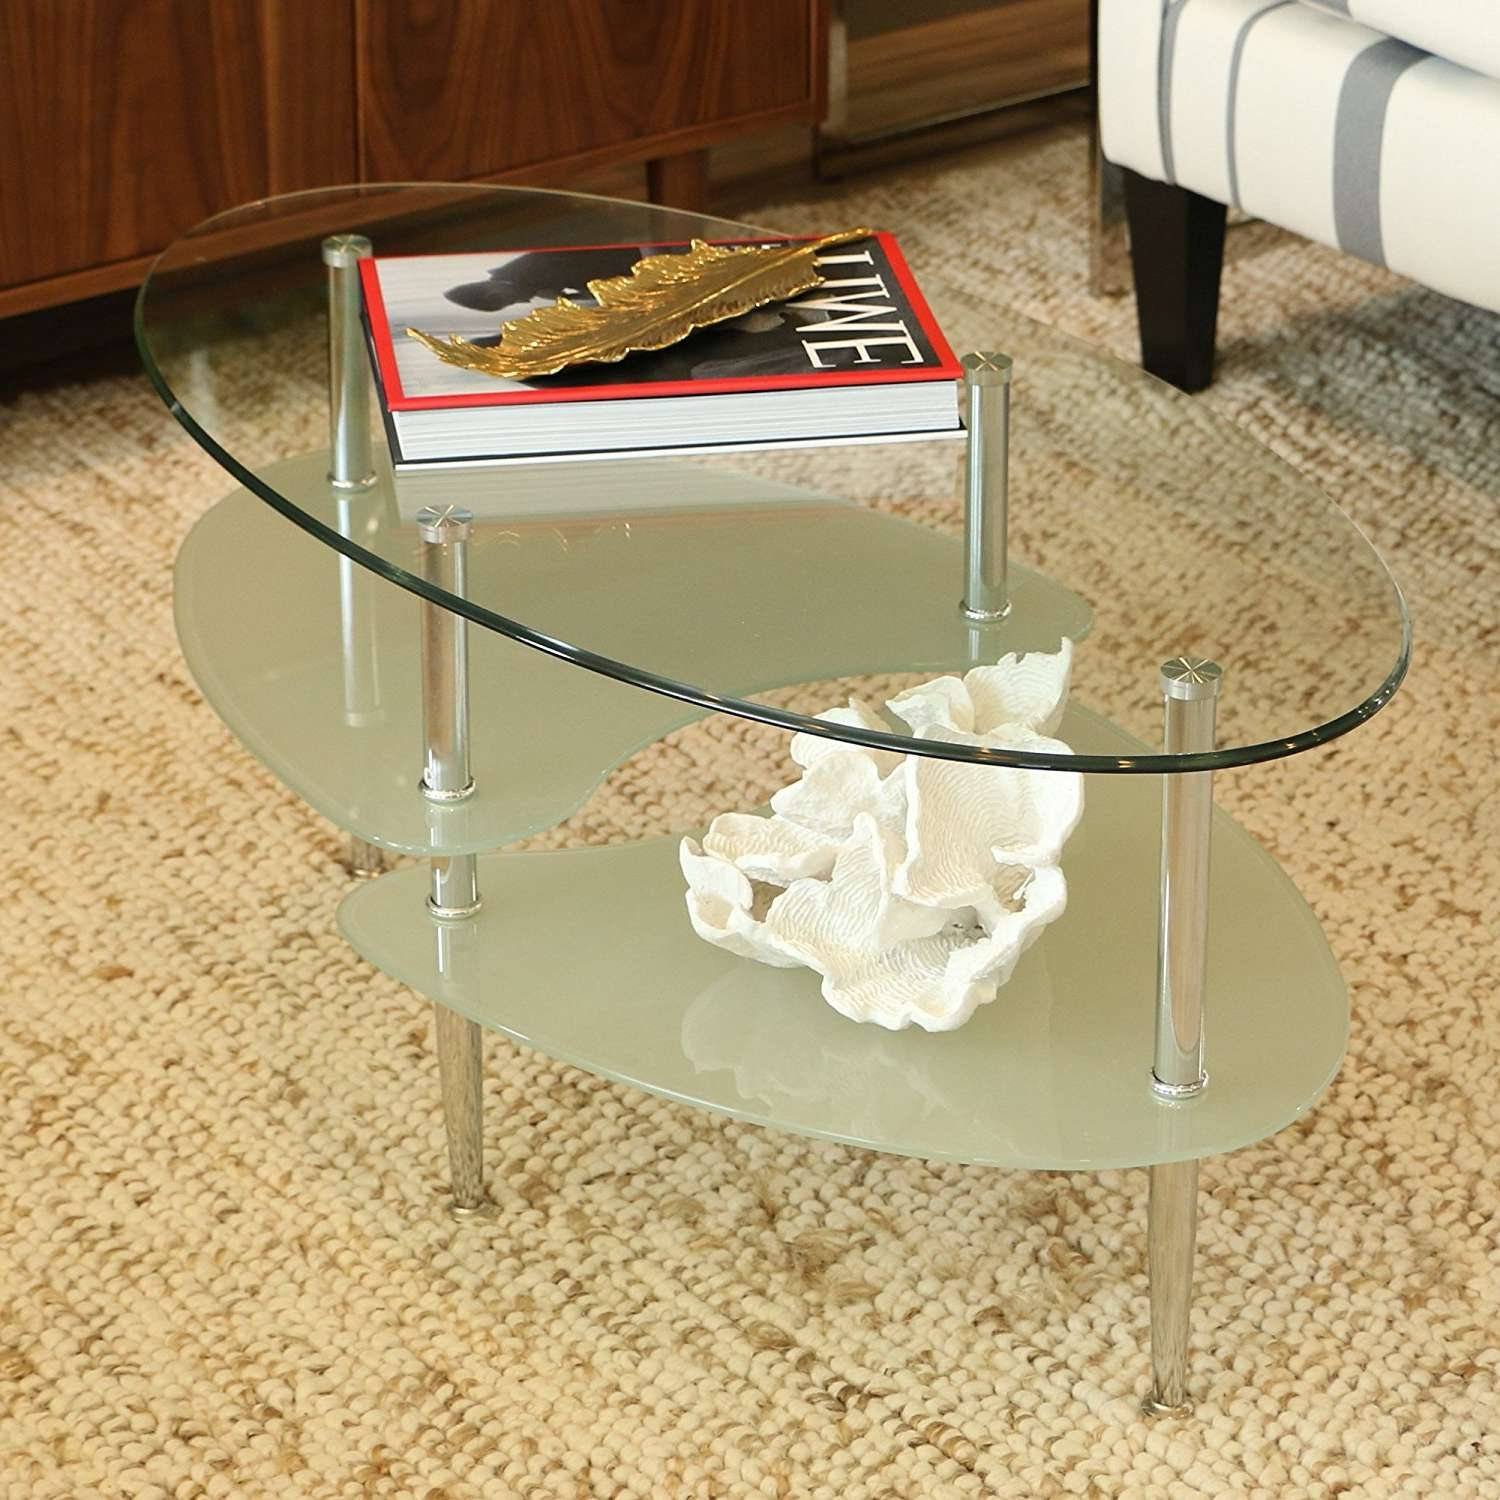 Oval Glass Coffee Table Contemporary Also Oval Glass Coffee Table Intended For Popular Metal Oval Coffee Tables (View 16 of 20)